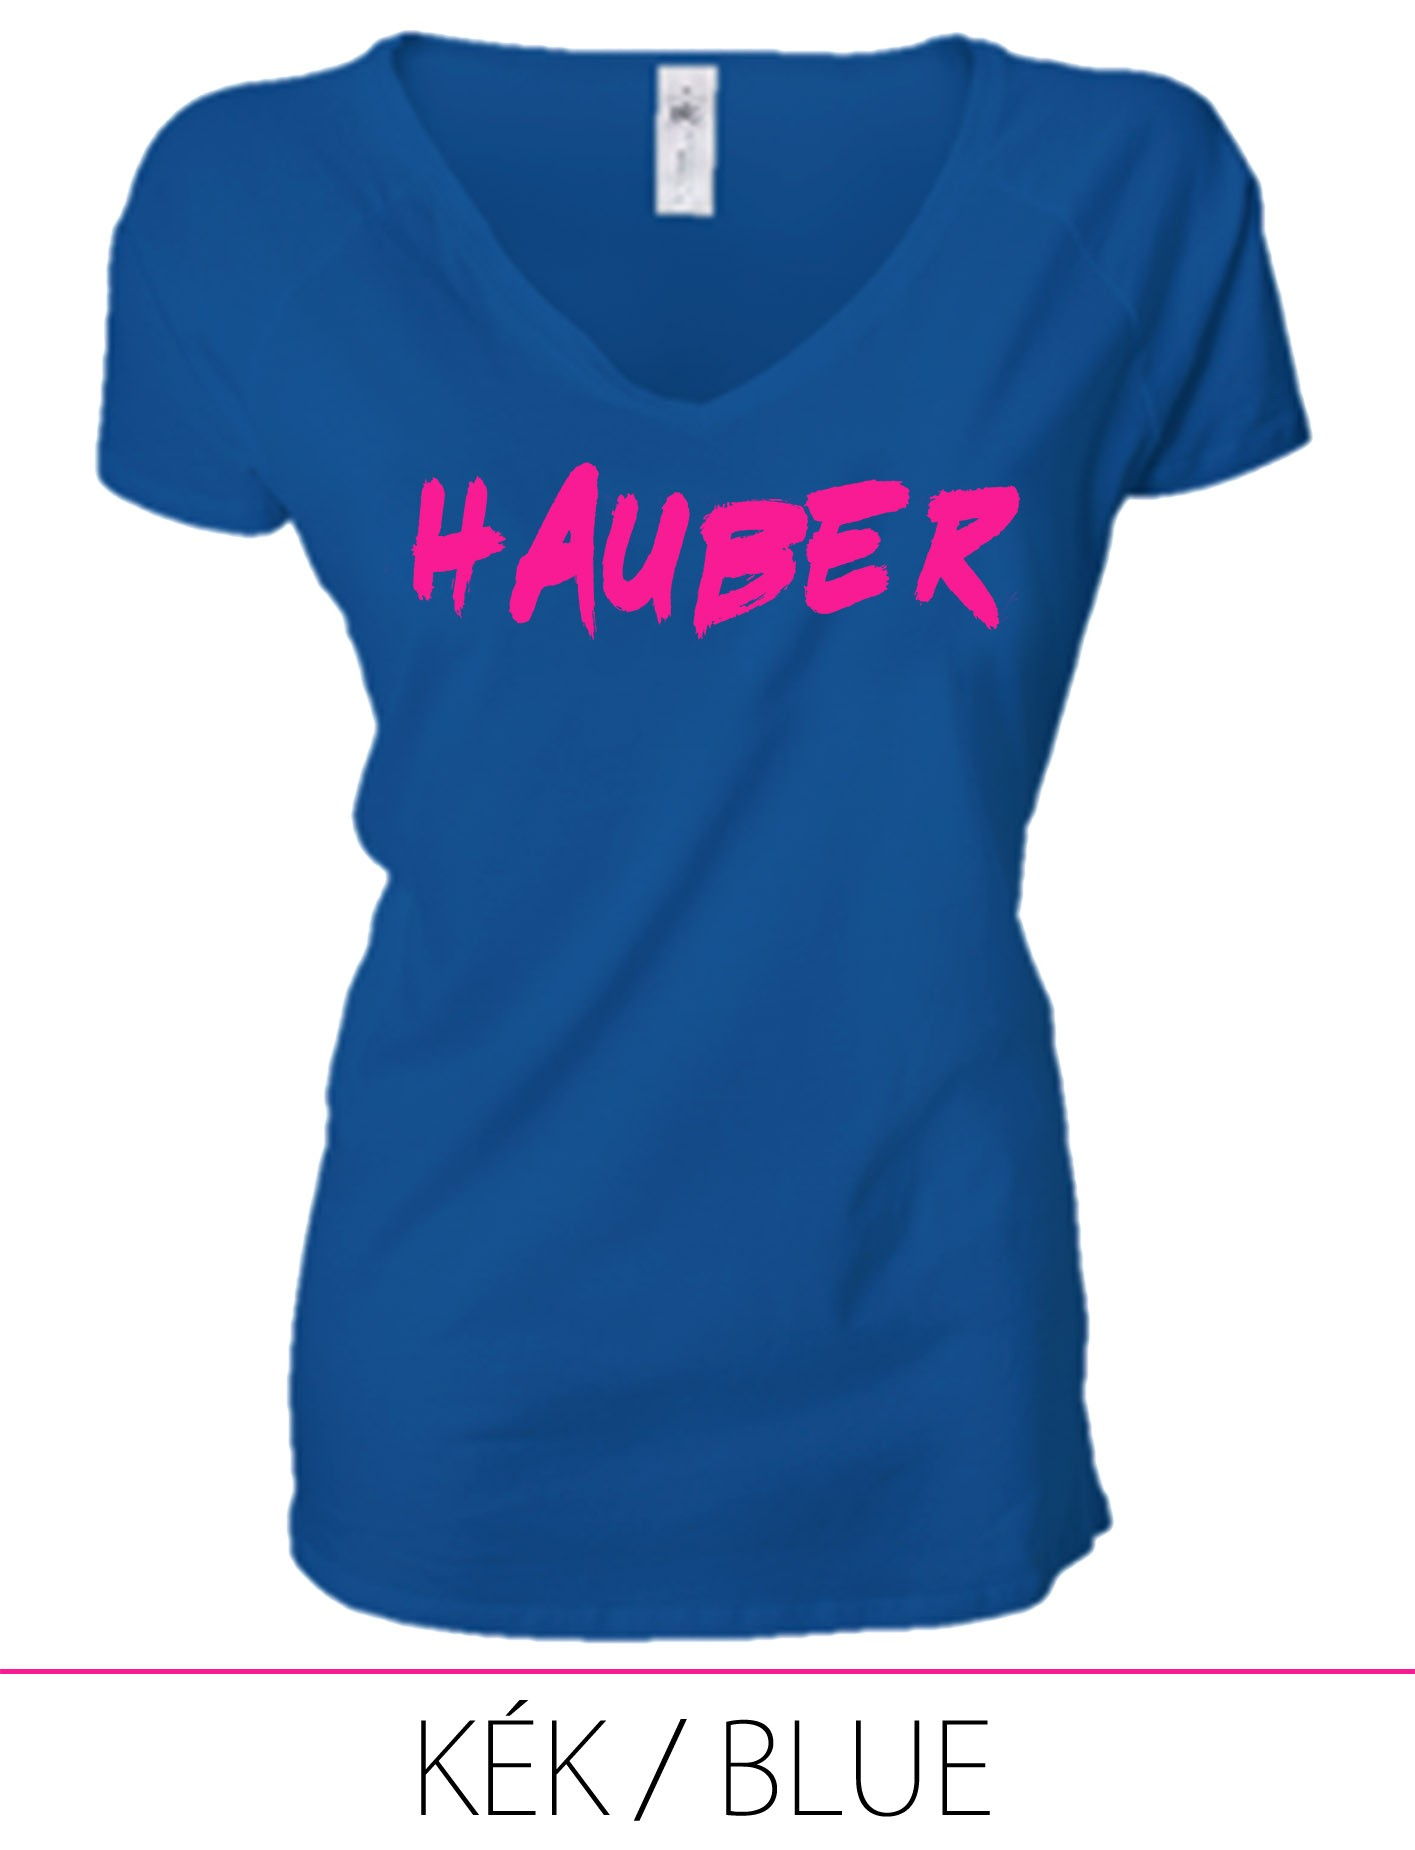 LADIES PREMIUM V NECK T-SHIRT HAUBER BLUE